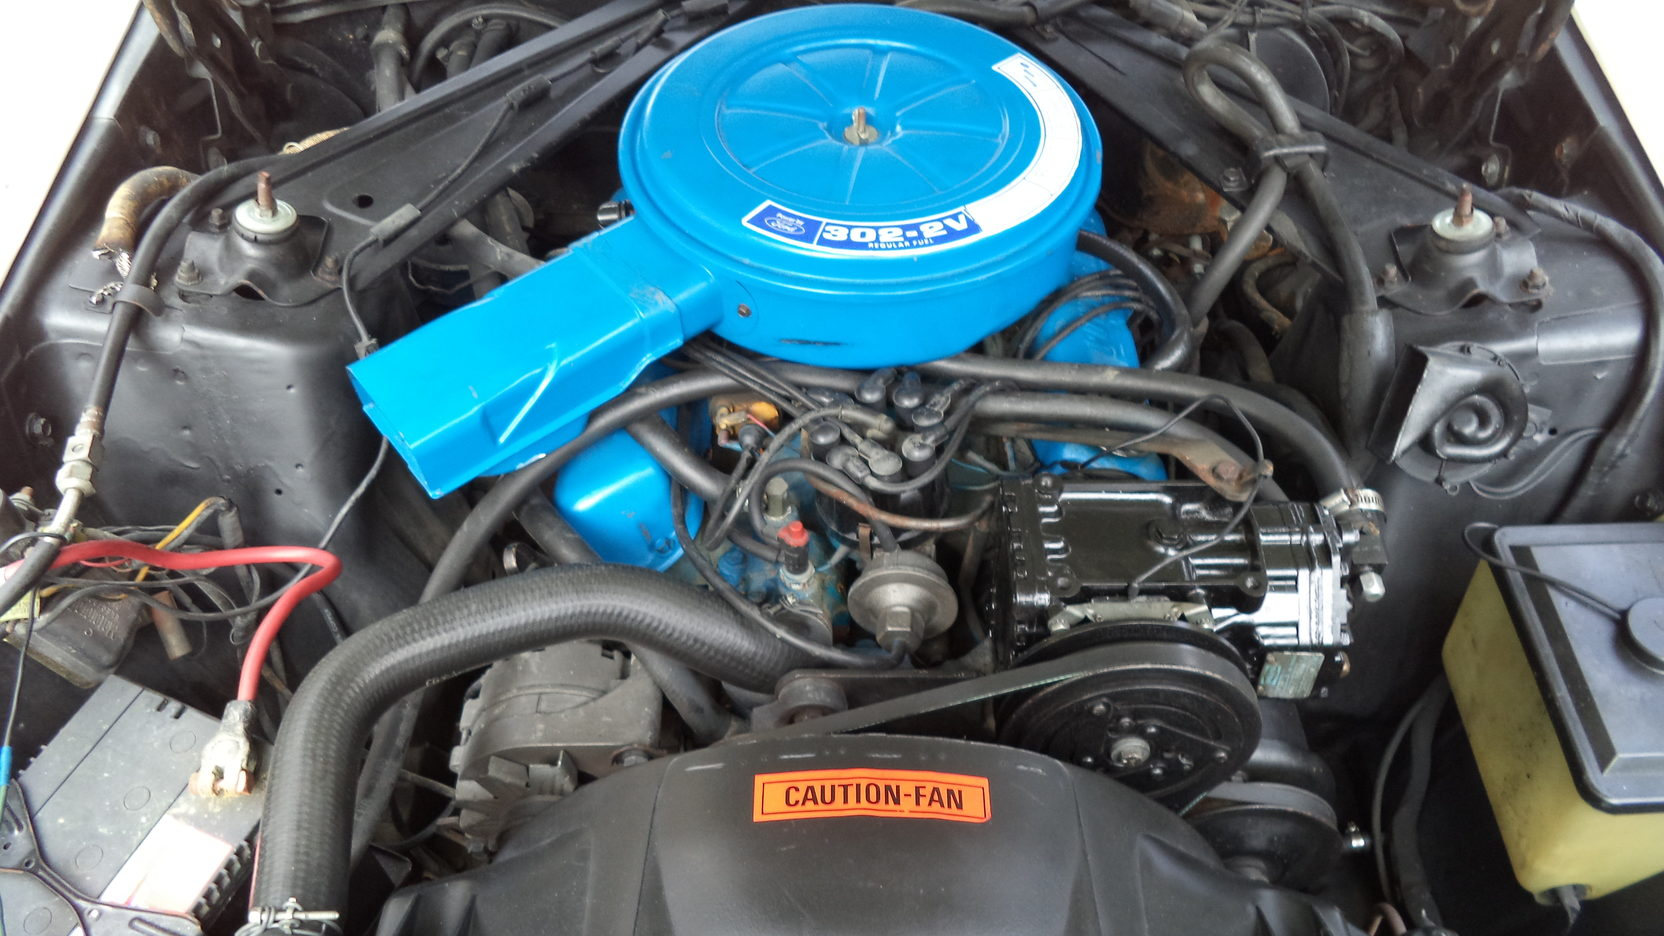 1972 Ford Mustang Sprint USA engine